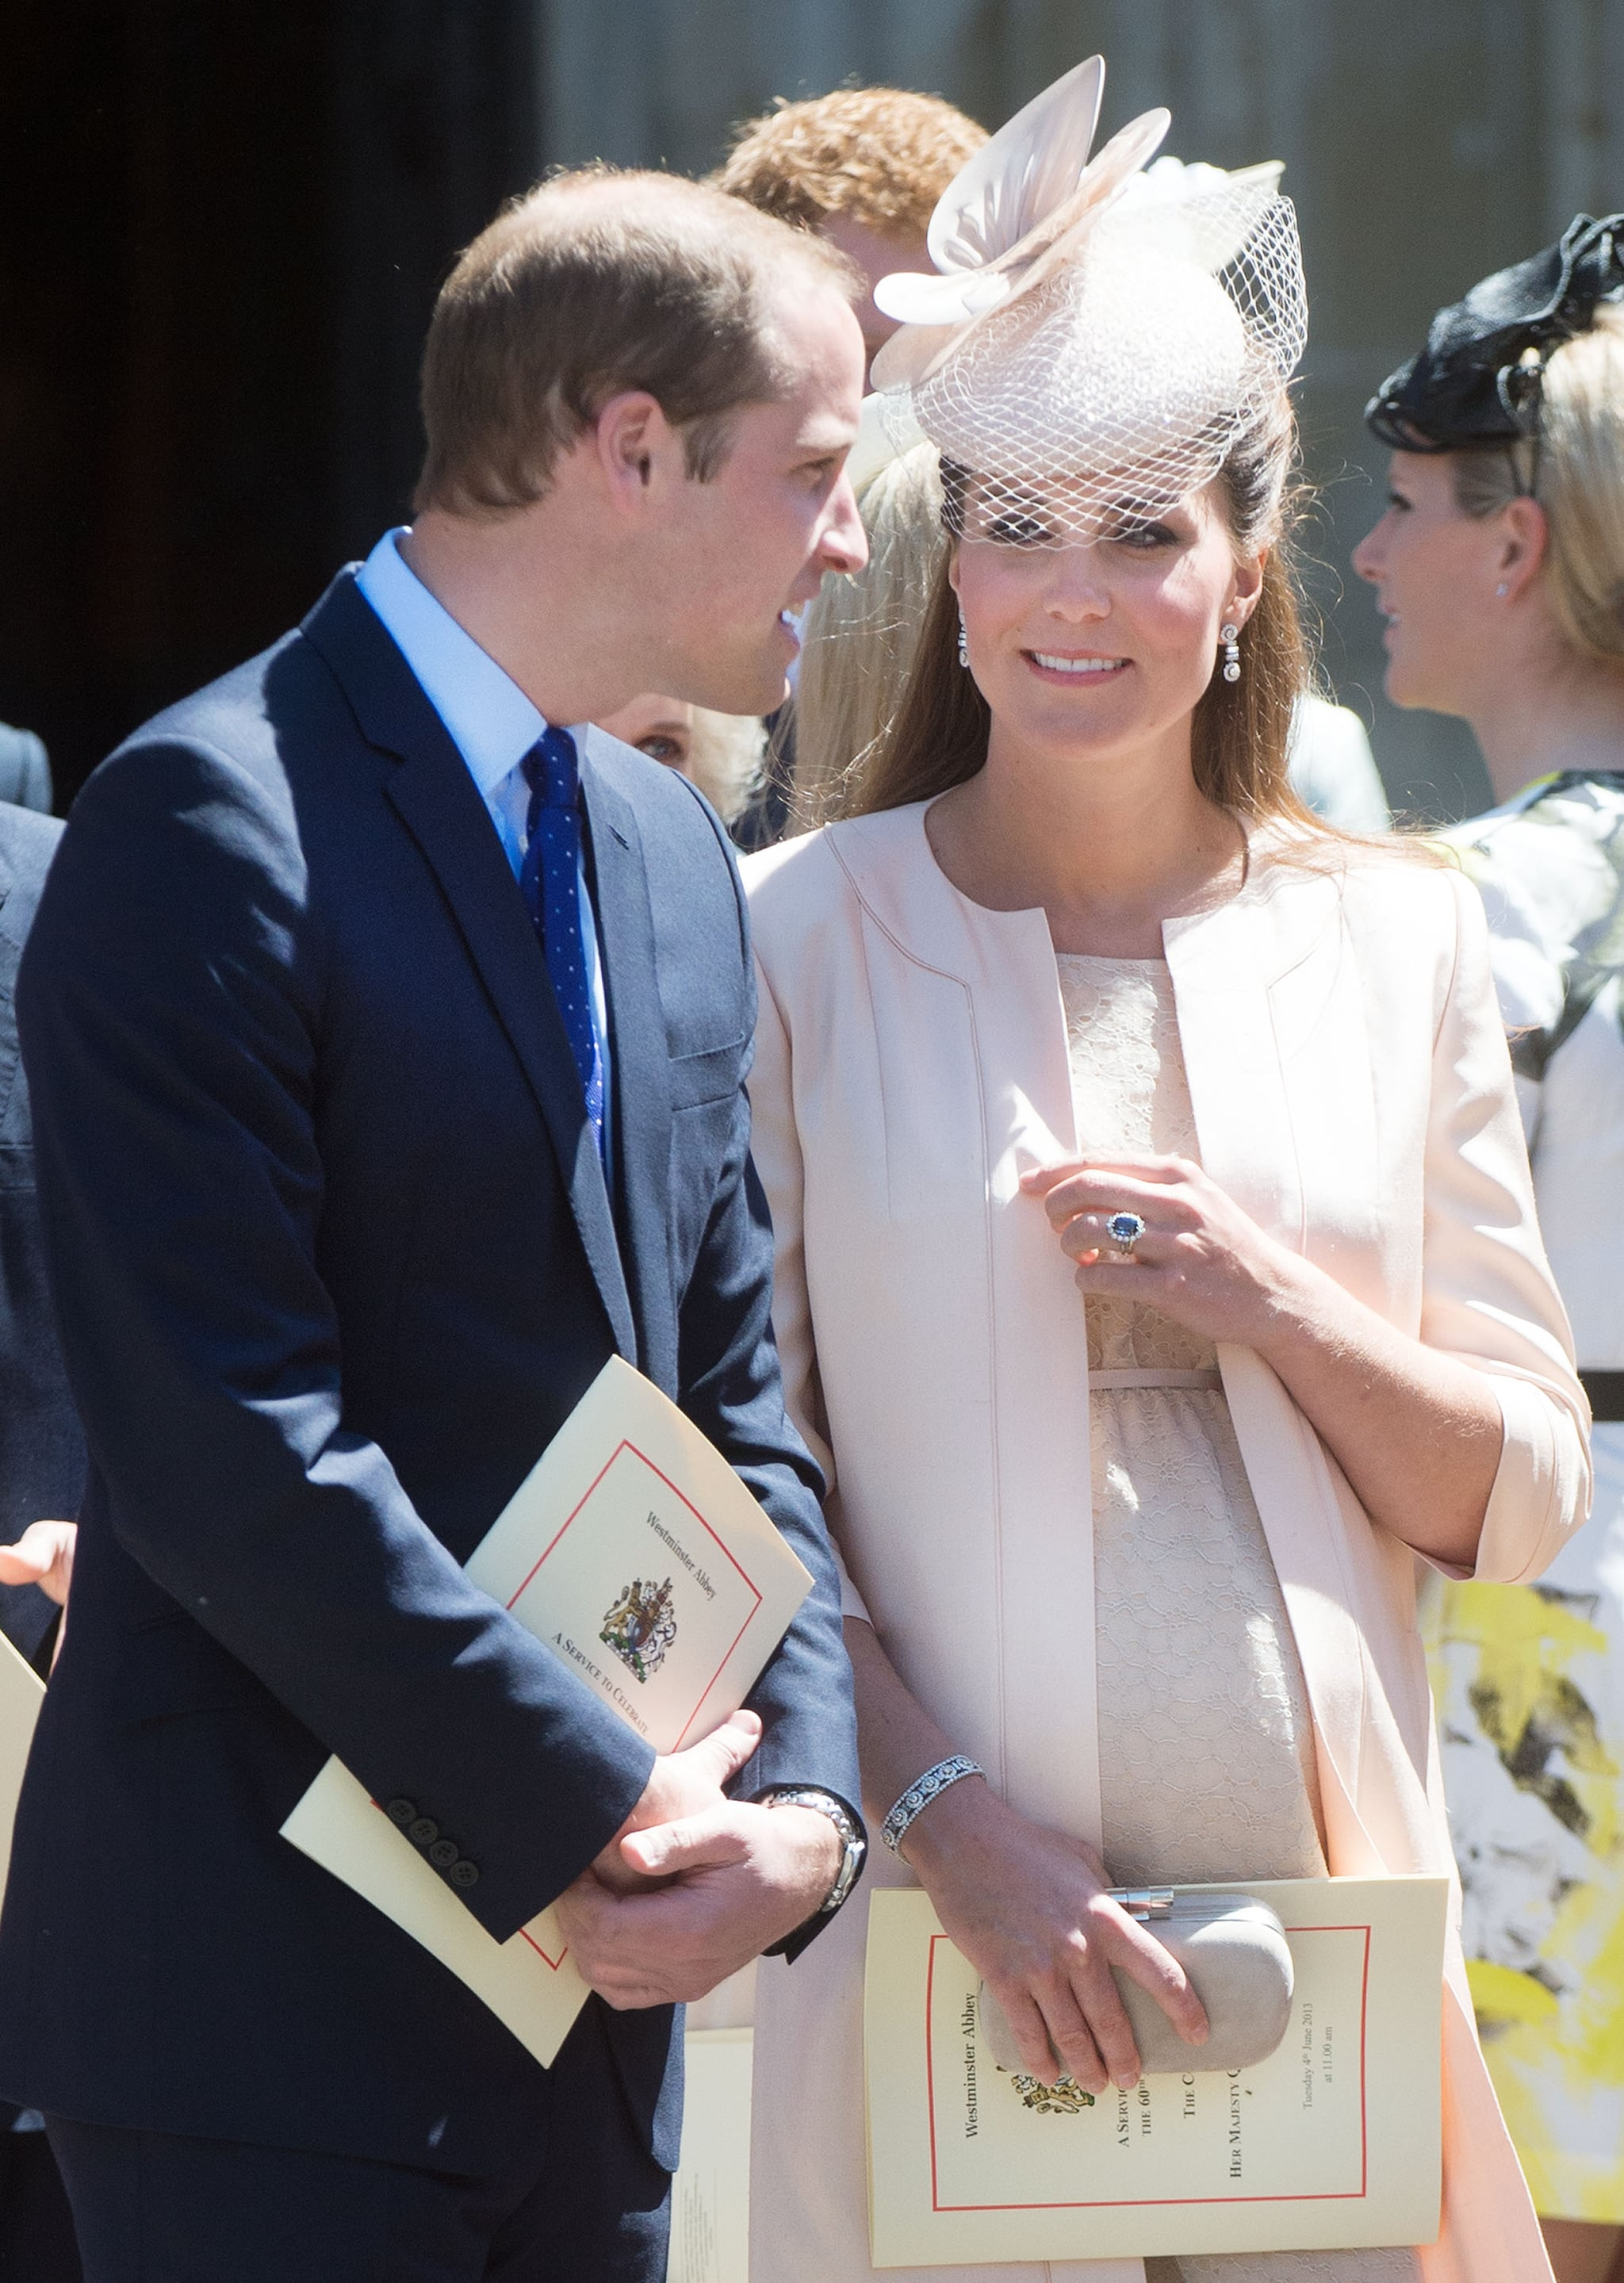 Kate looked fondly at William when the attended a church service for the Queen's 60th Coronation anniversary at Westminster Abbey in June 2013.